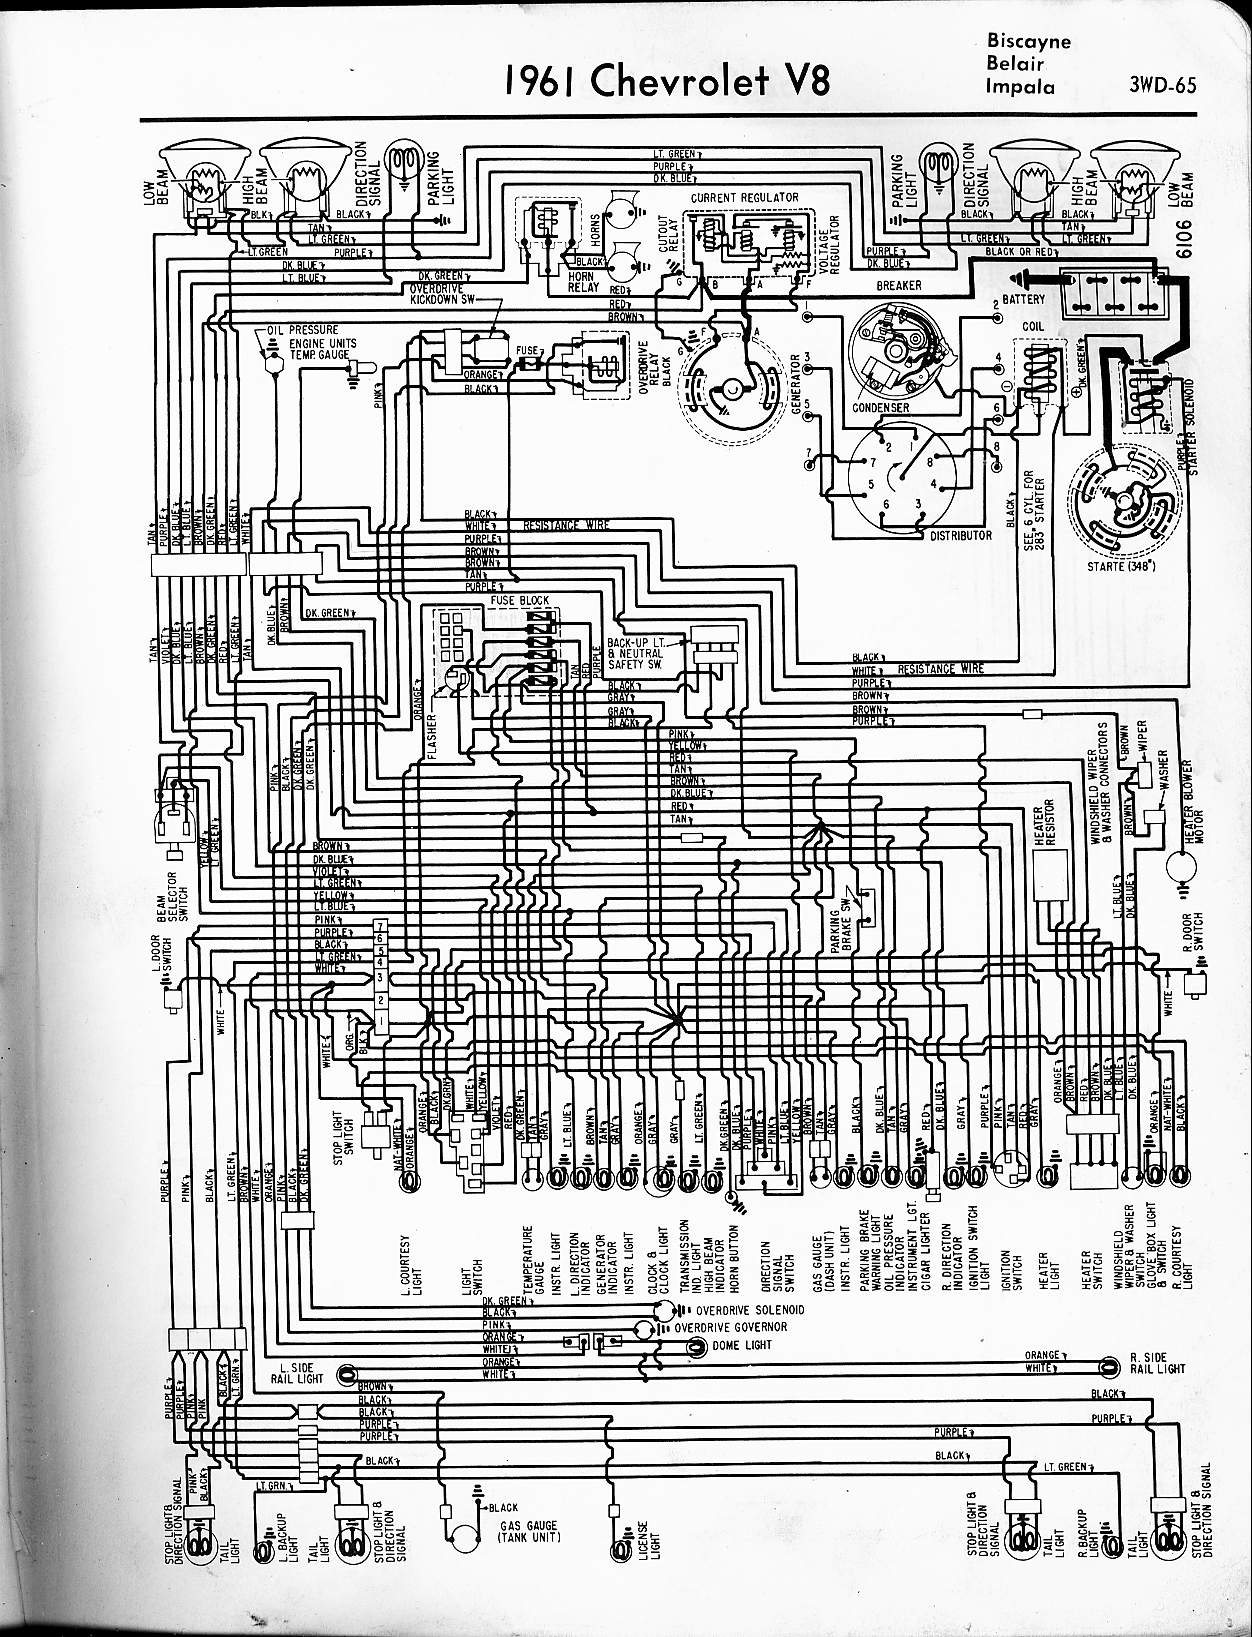 hight resolution of 1967 chevy impala wiring diagram wiring diagram todays 1963 chevy nova wiring diagram 1967 chevy impala wiring diagram